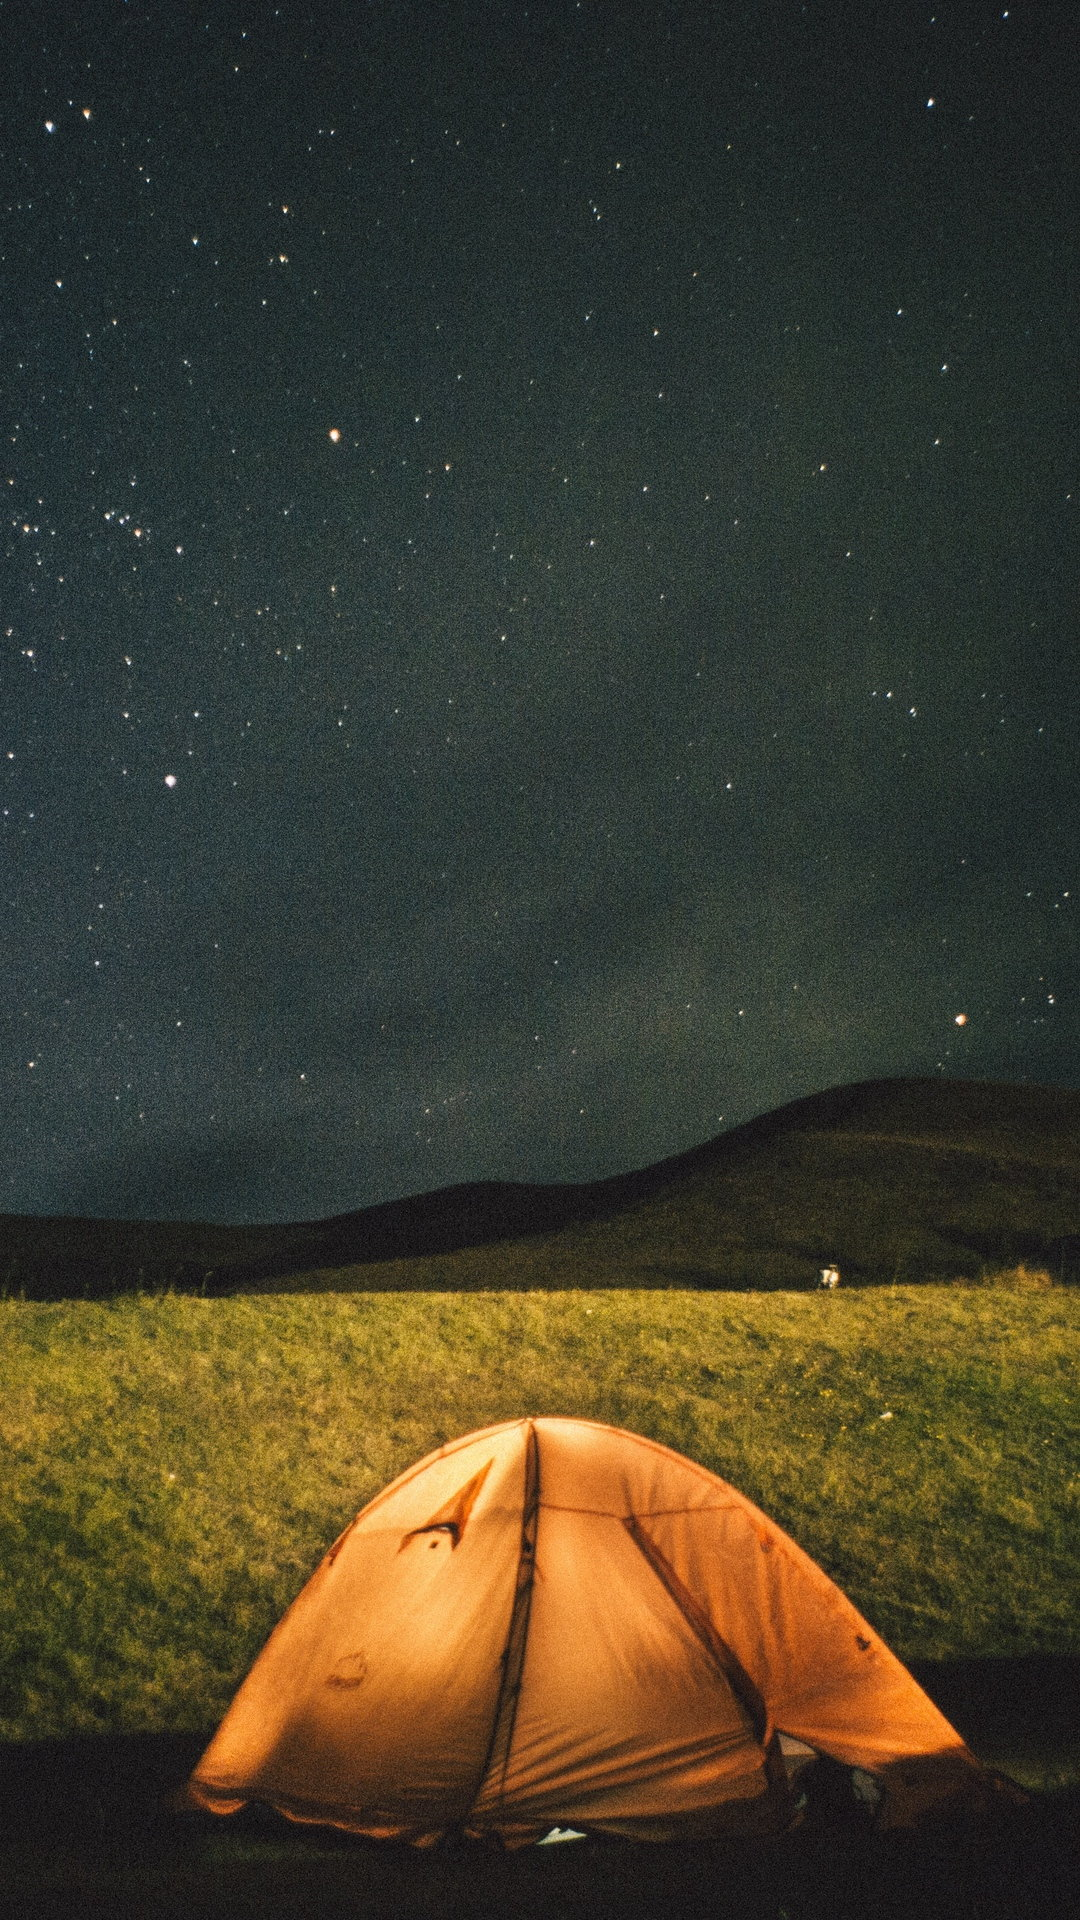 Tent Starry Sky Night Wallpaper 1080x1920